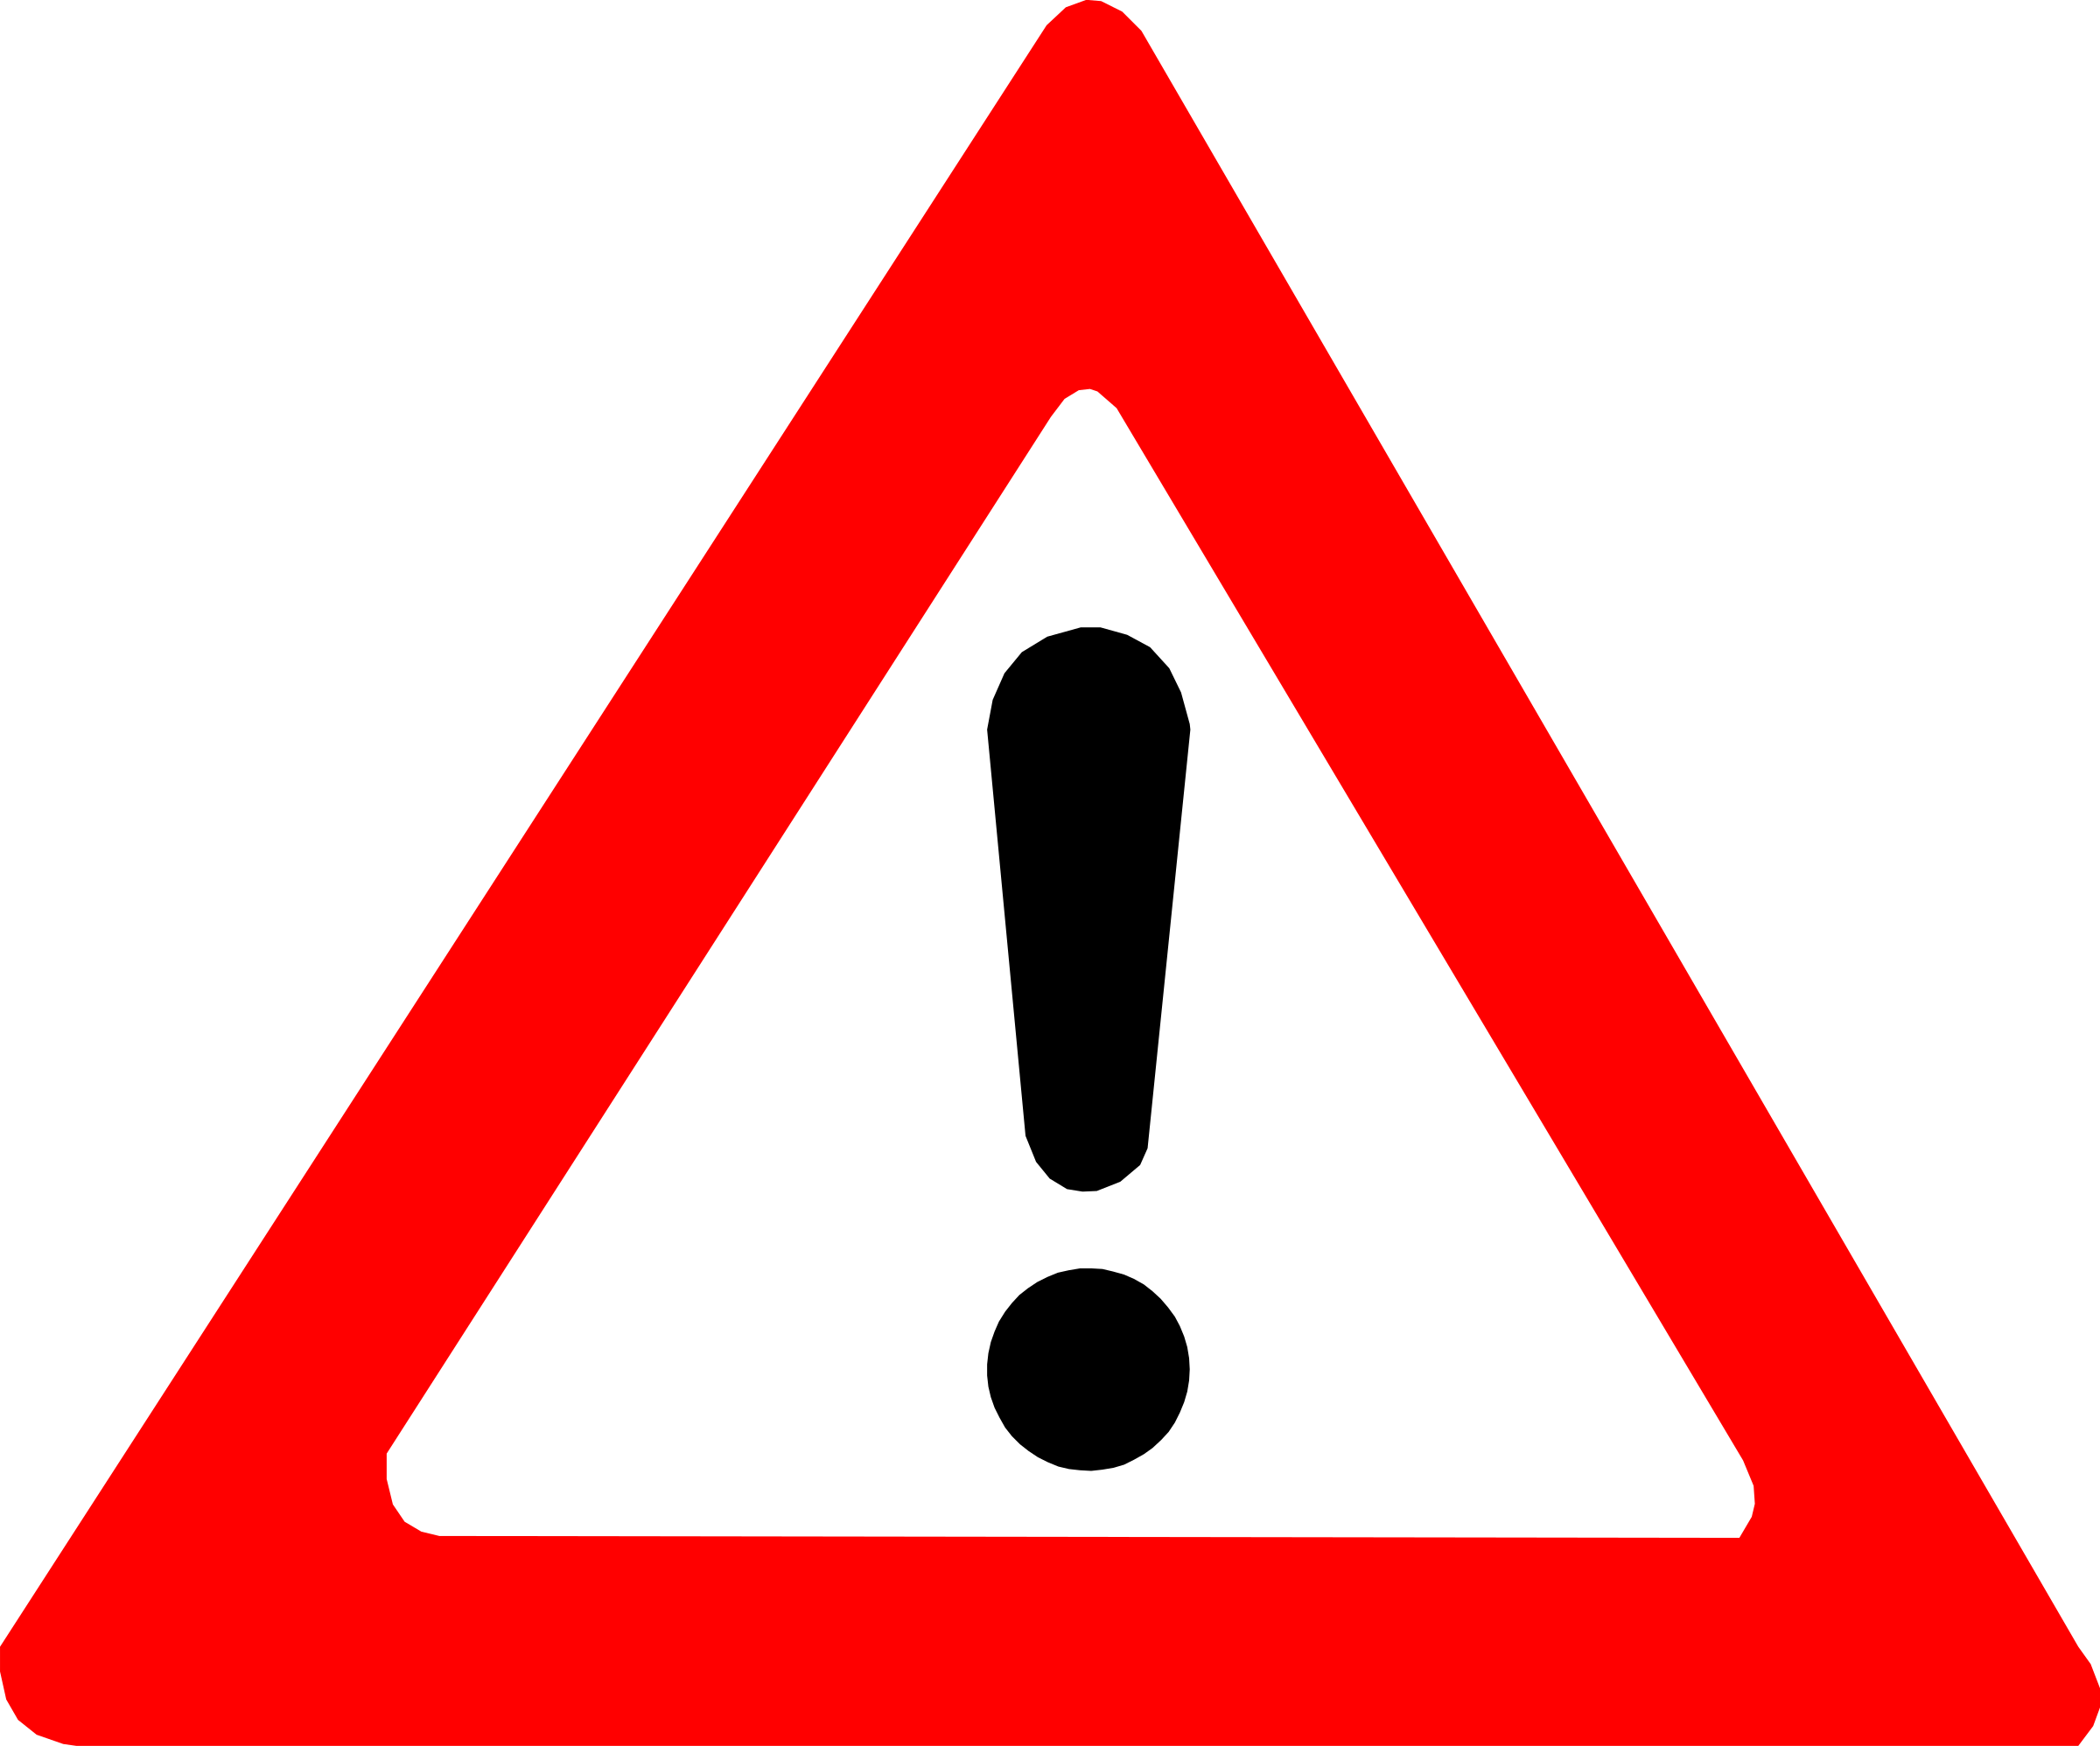 Warning Sign by palomaironique